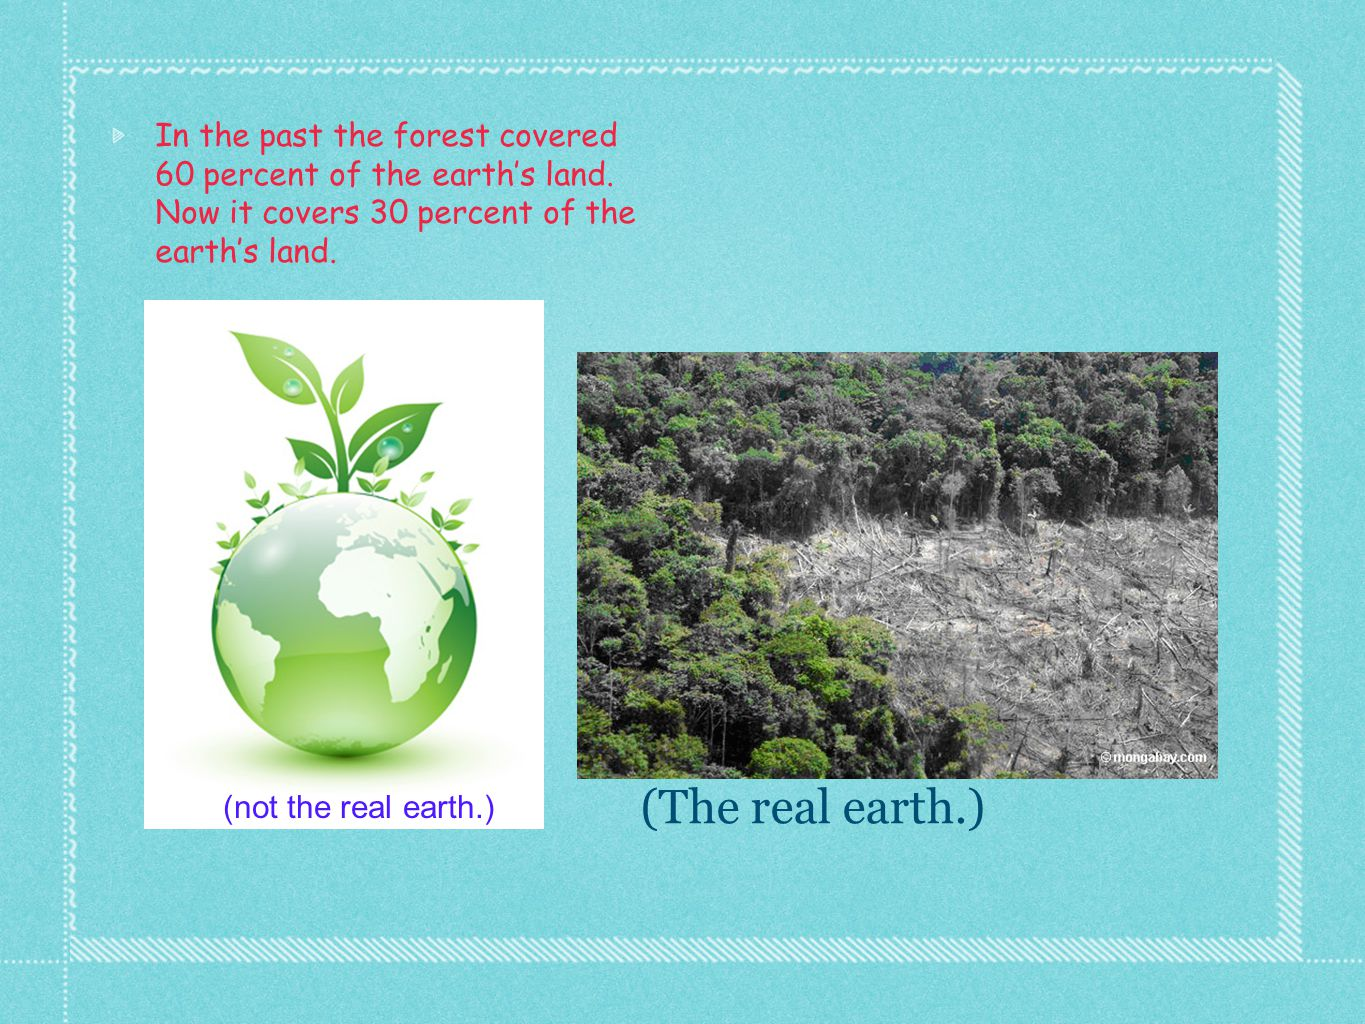 In the past the forest covered 60 percent of the earth's land. Now it covers 30 percent of the earth's land. (not the real earth.) (The real earth.)